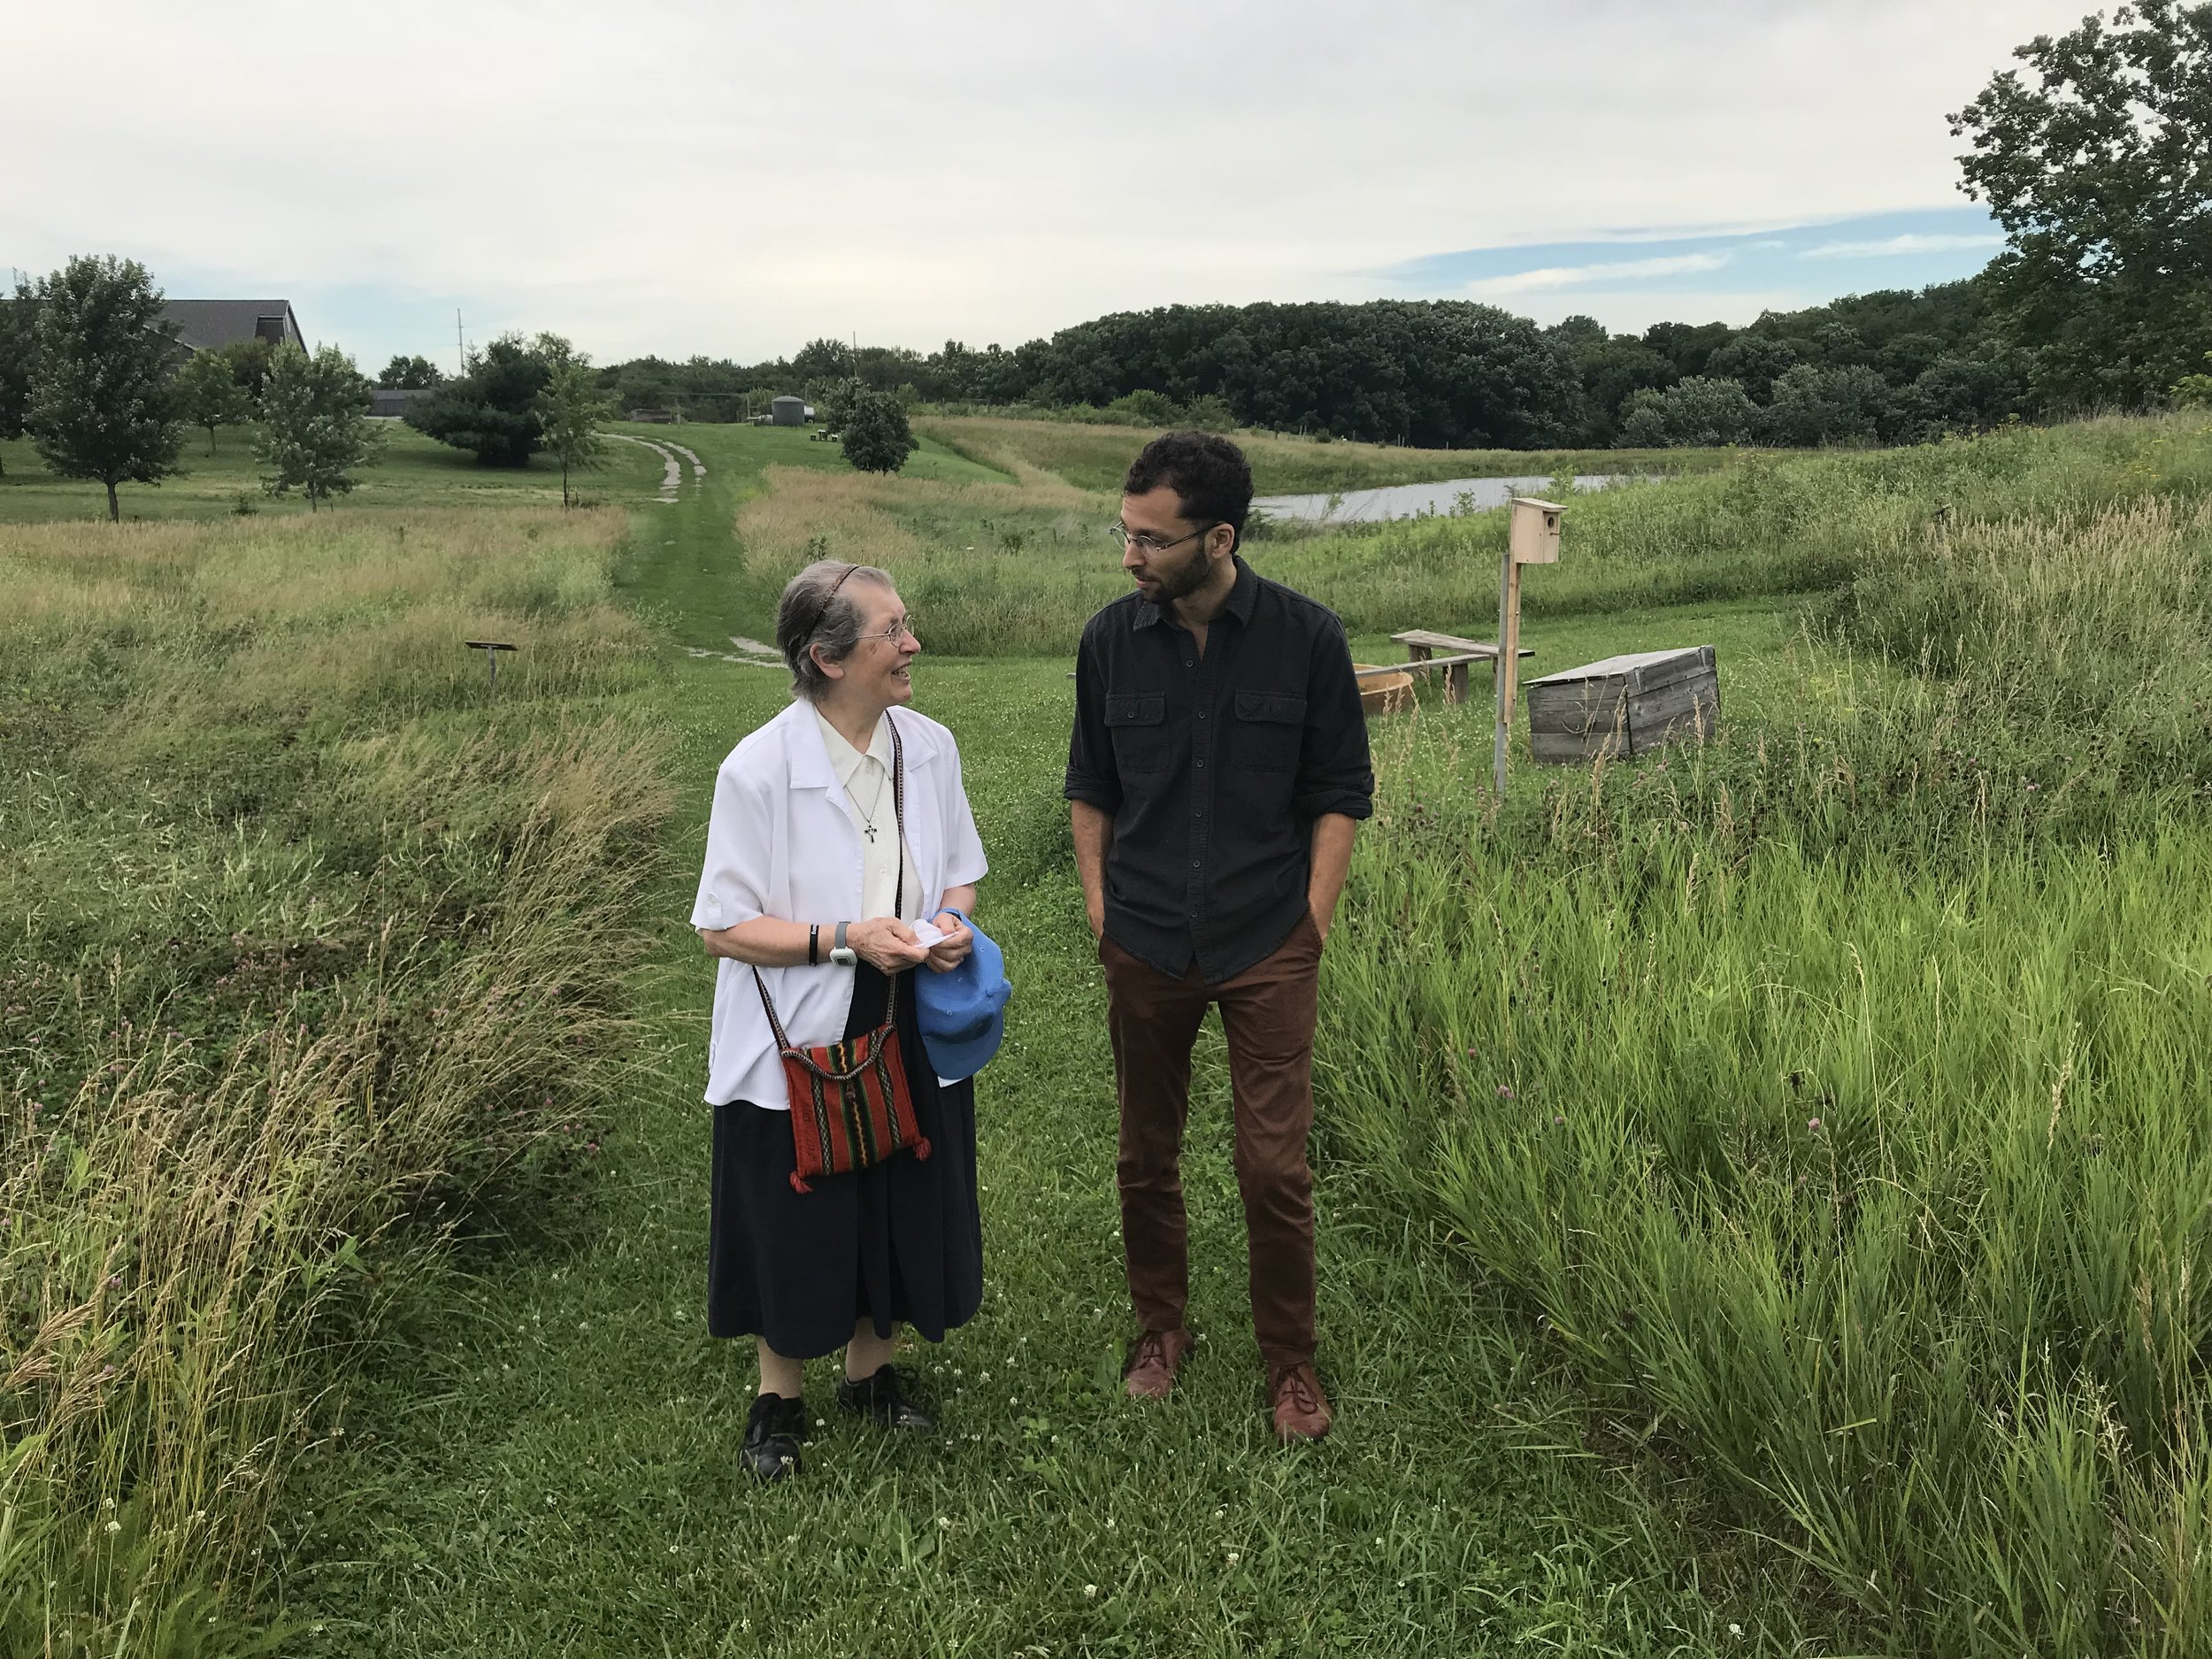 Walking with Sr. Mary Clare Fichtner, OP, at Jubilee Farm, an eco-spirituality farm and center, run by the Dominican Sisters of Springfield, Illinois. Photo by Alan Webb